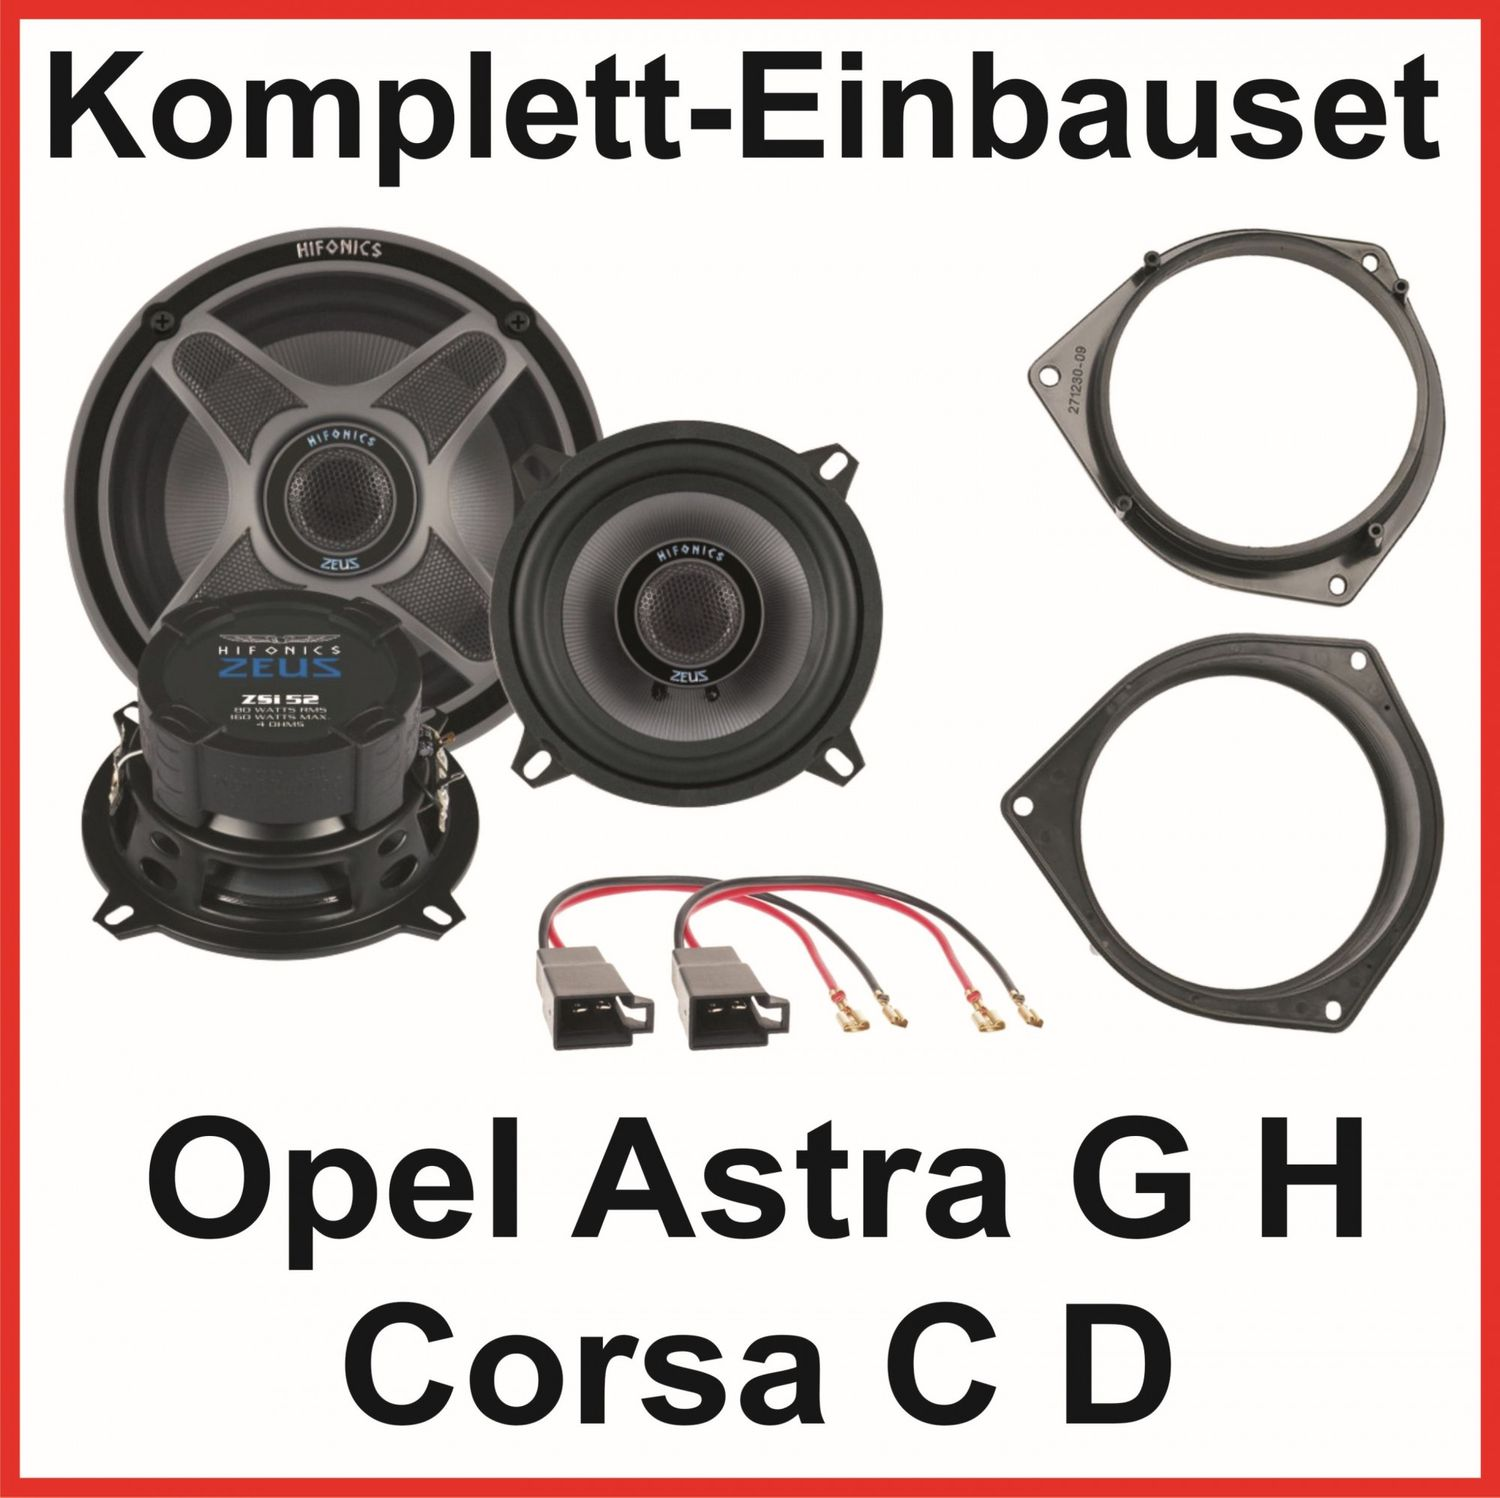 lautsprecher set opel astra g h corsa c d hifonics zsi52 2. Black Bedroom Furniture Sets. Home Design Ideas